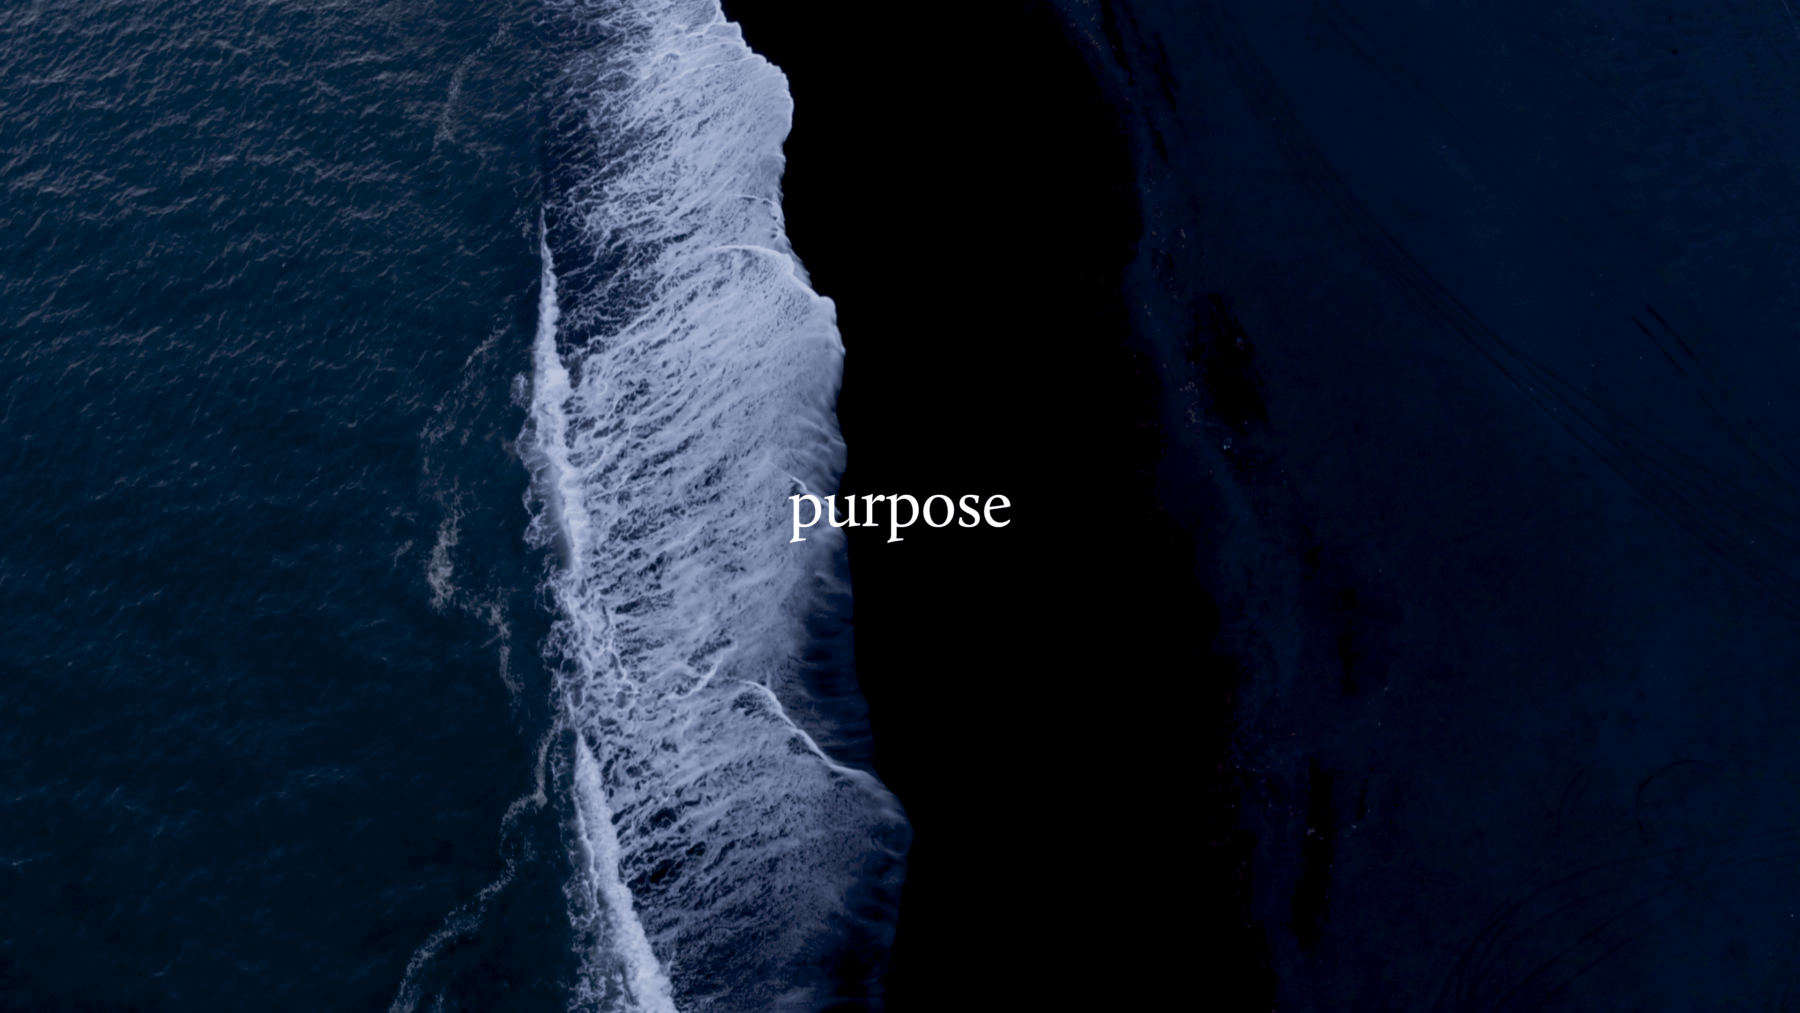 Sermon Series Ideas #8: Purpose